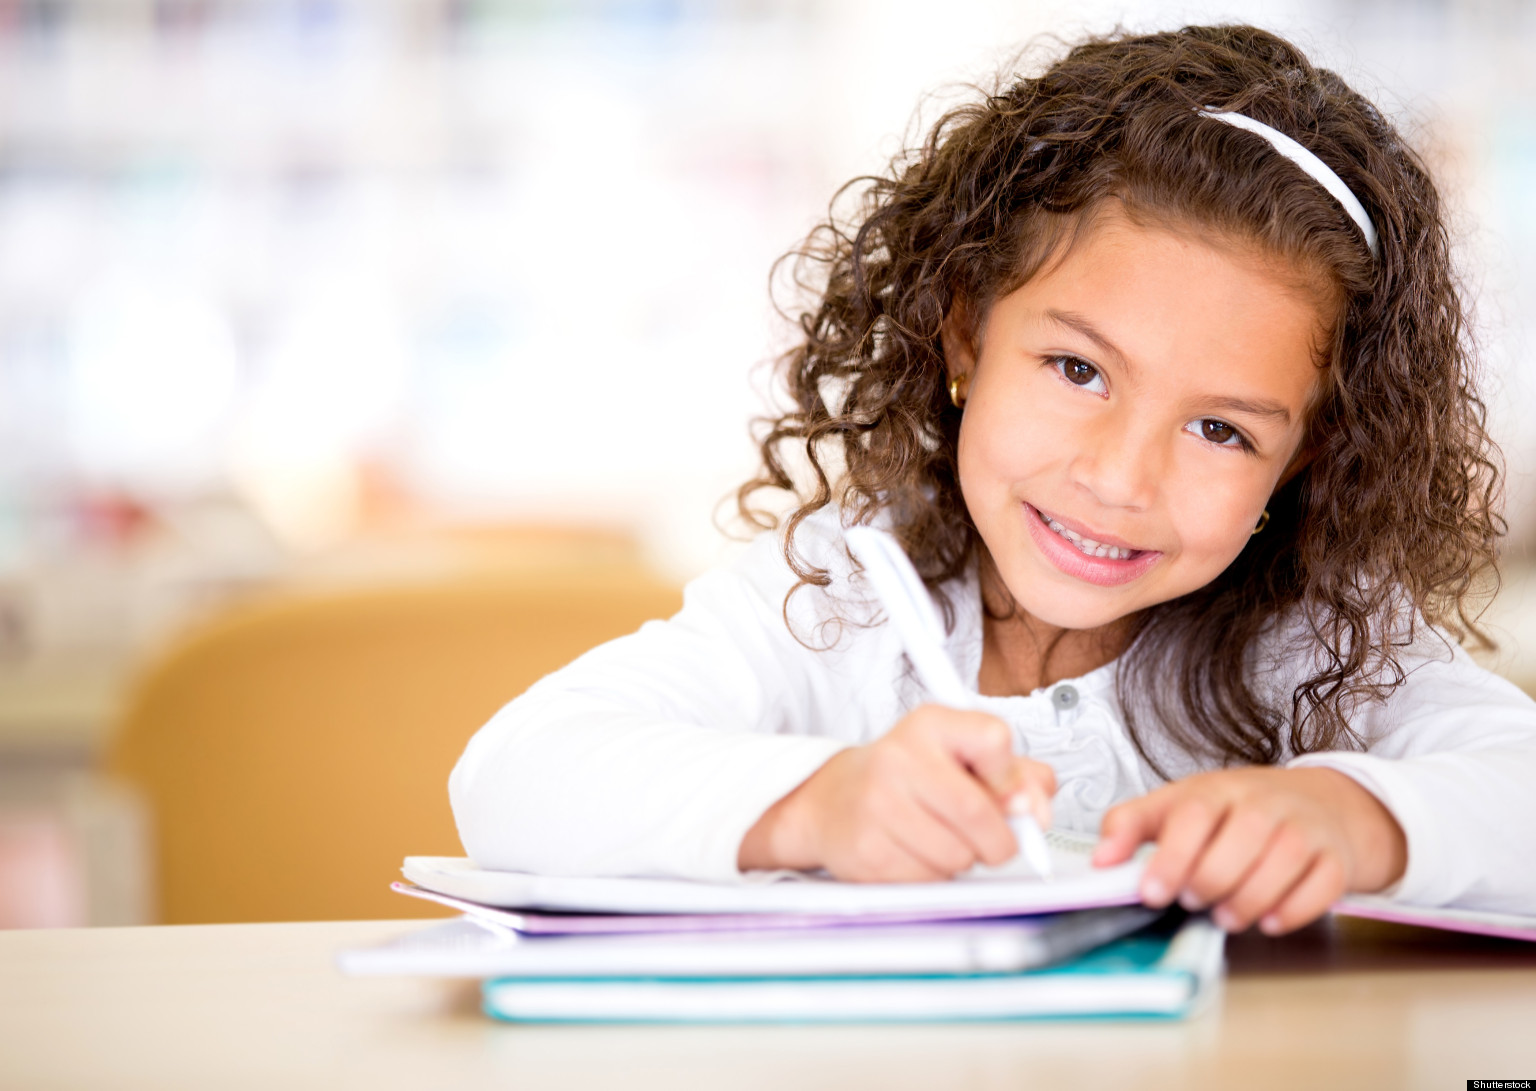 young girl smiling and studying for school